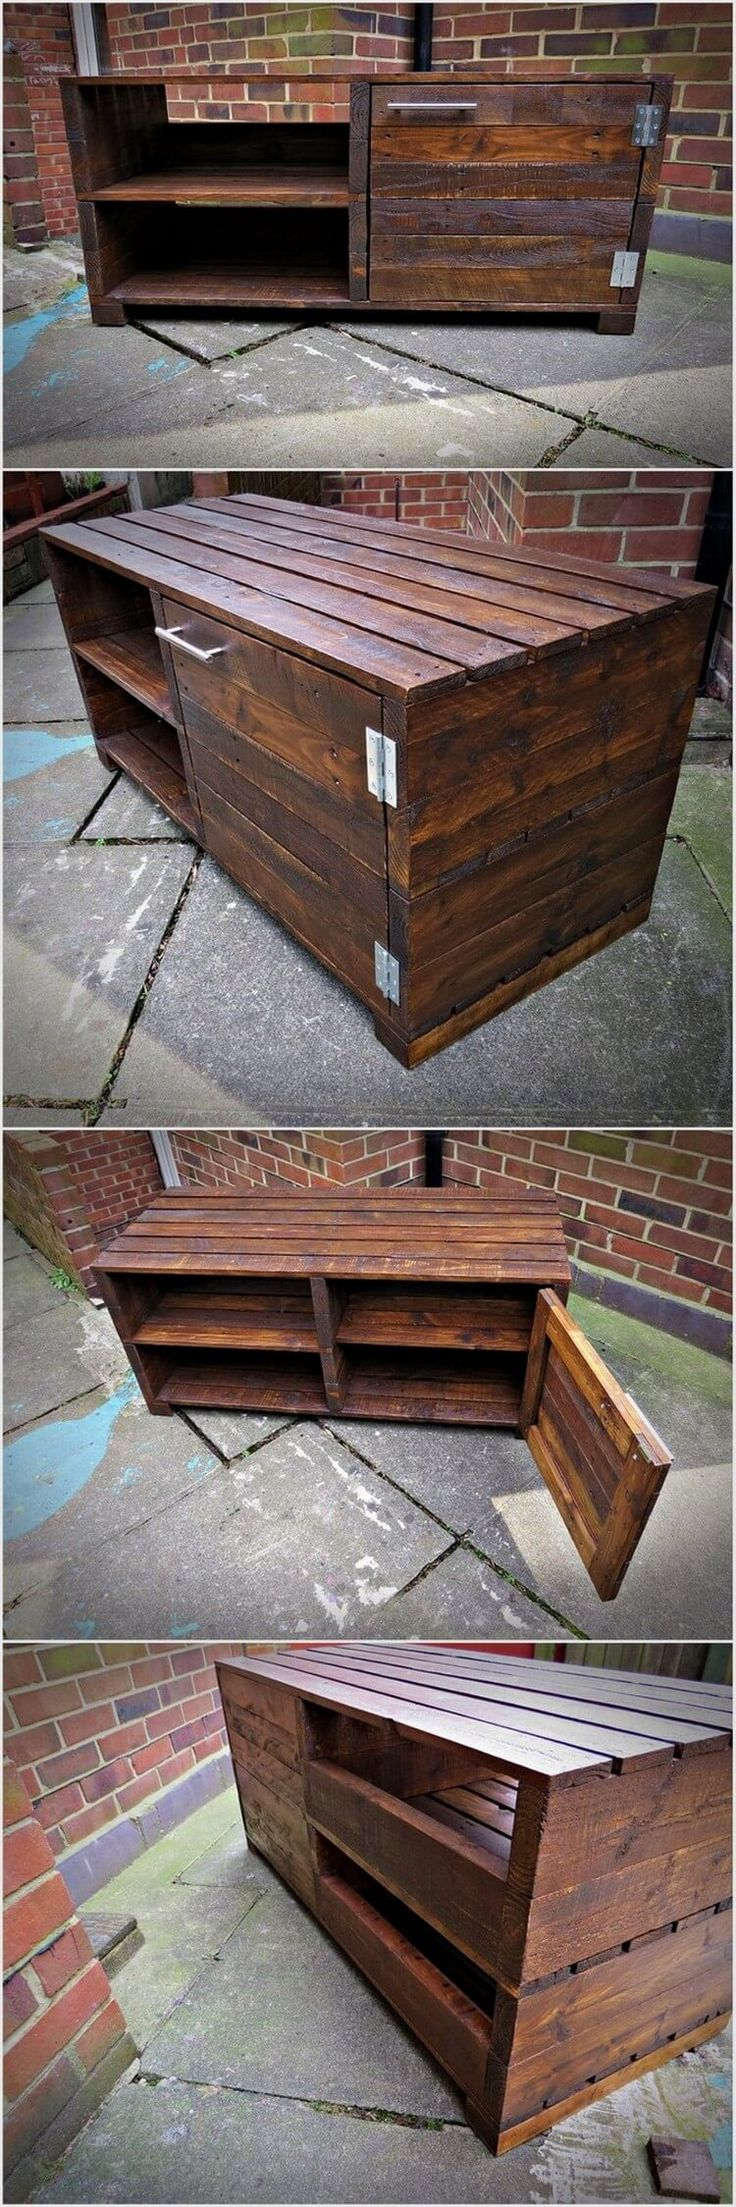 Wooden transport pallets have become increasingly popular for diy - Some Cool Projects To Try With Used Wood Pallets